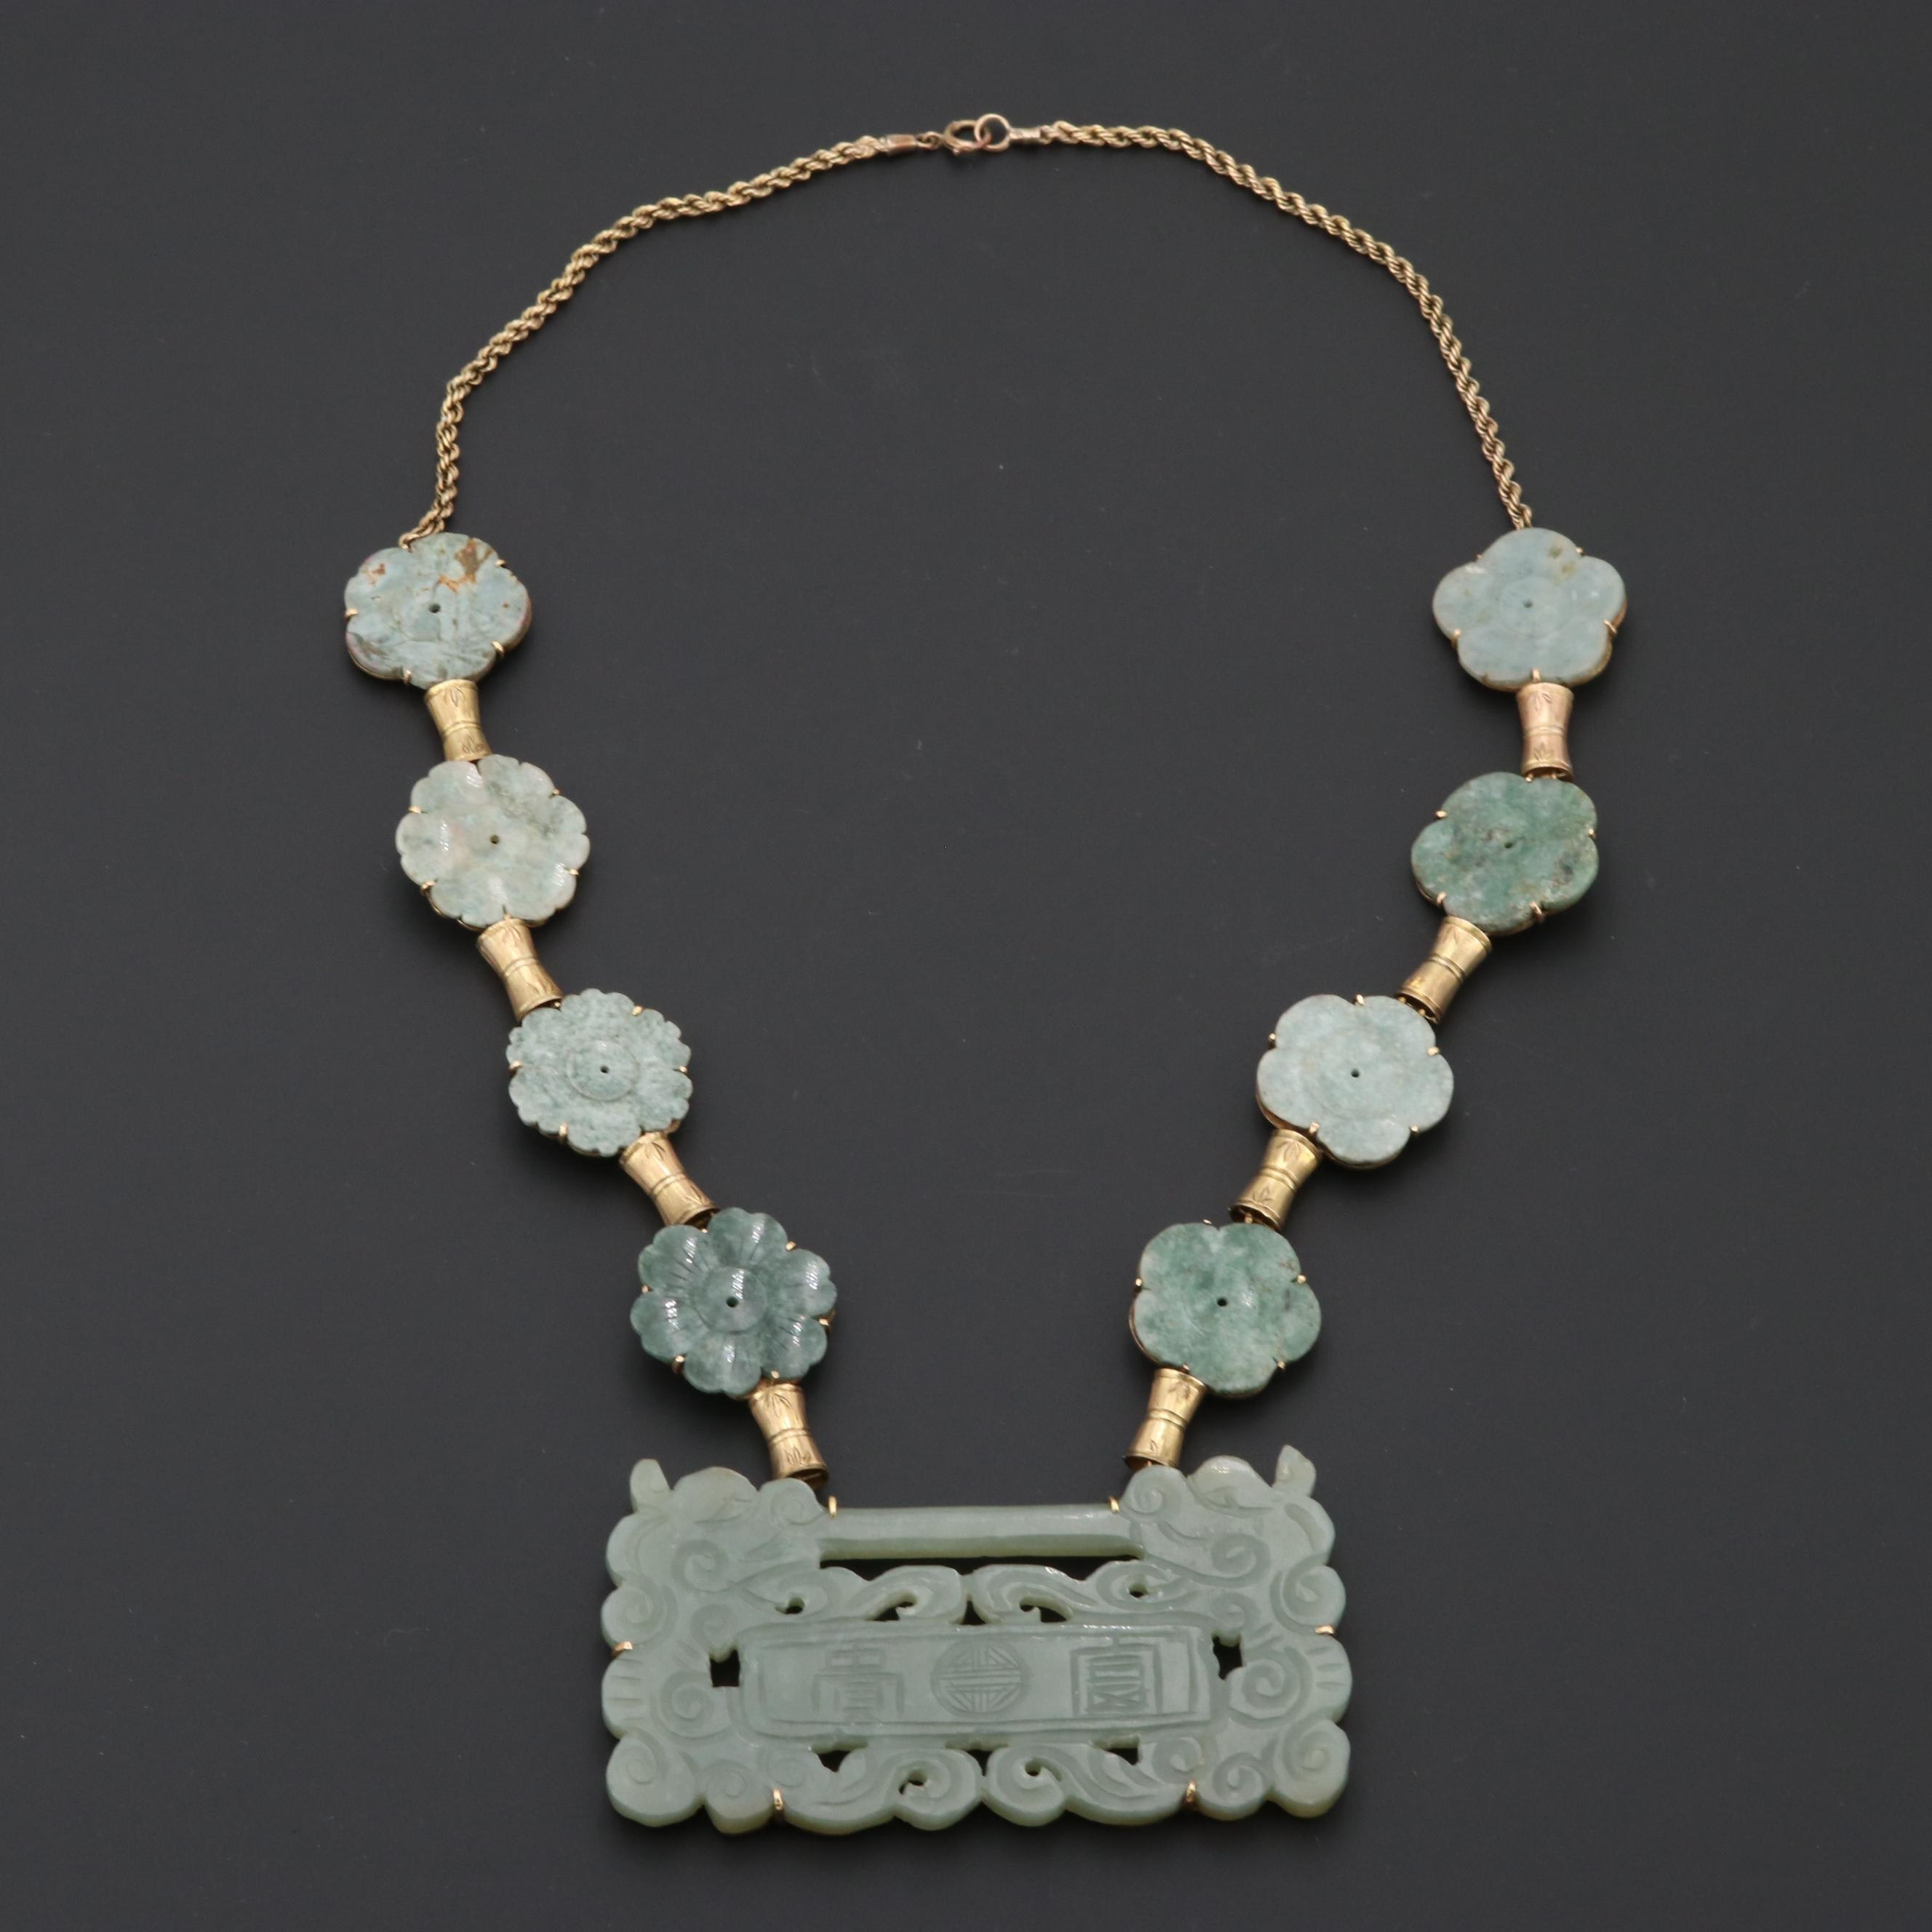 Chinese 14K Yellow Gold Carved Bowenite and Serpentine Necklace